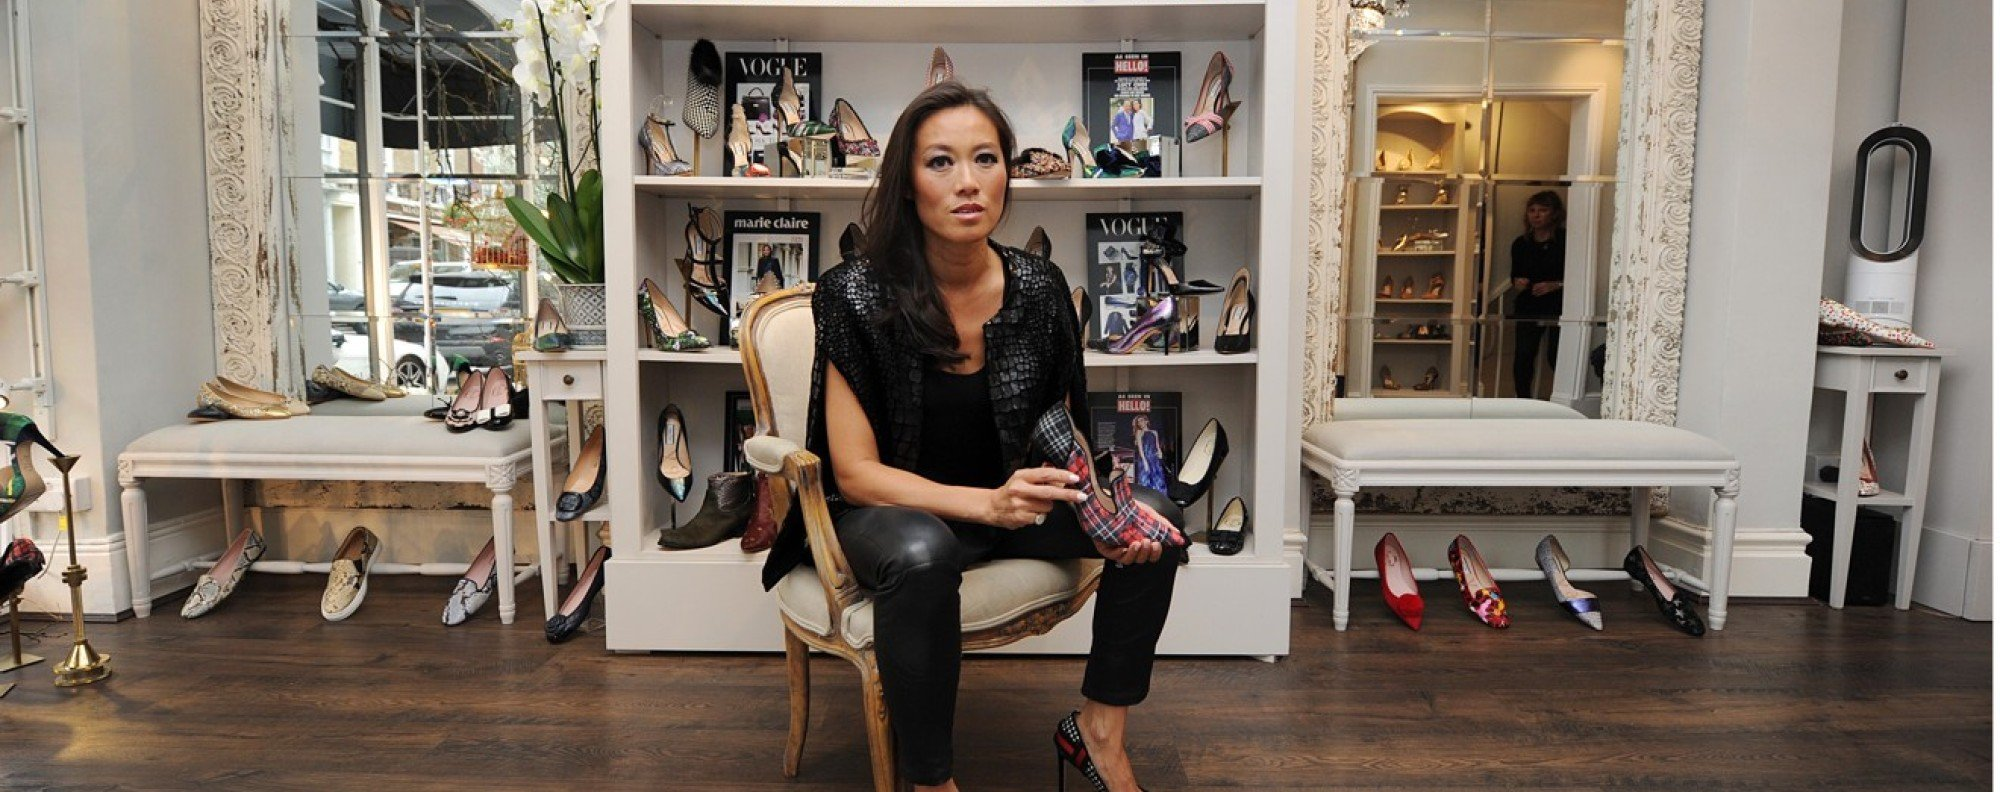 Shoe designer Lucy Choi, at her shop in London, England. Picture: Mike Clarke